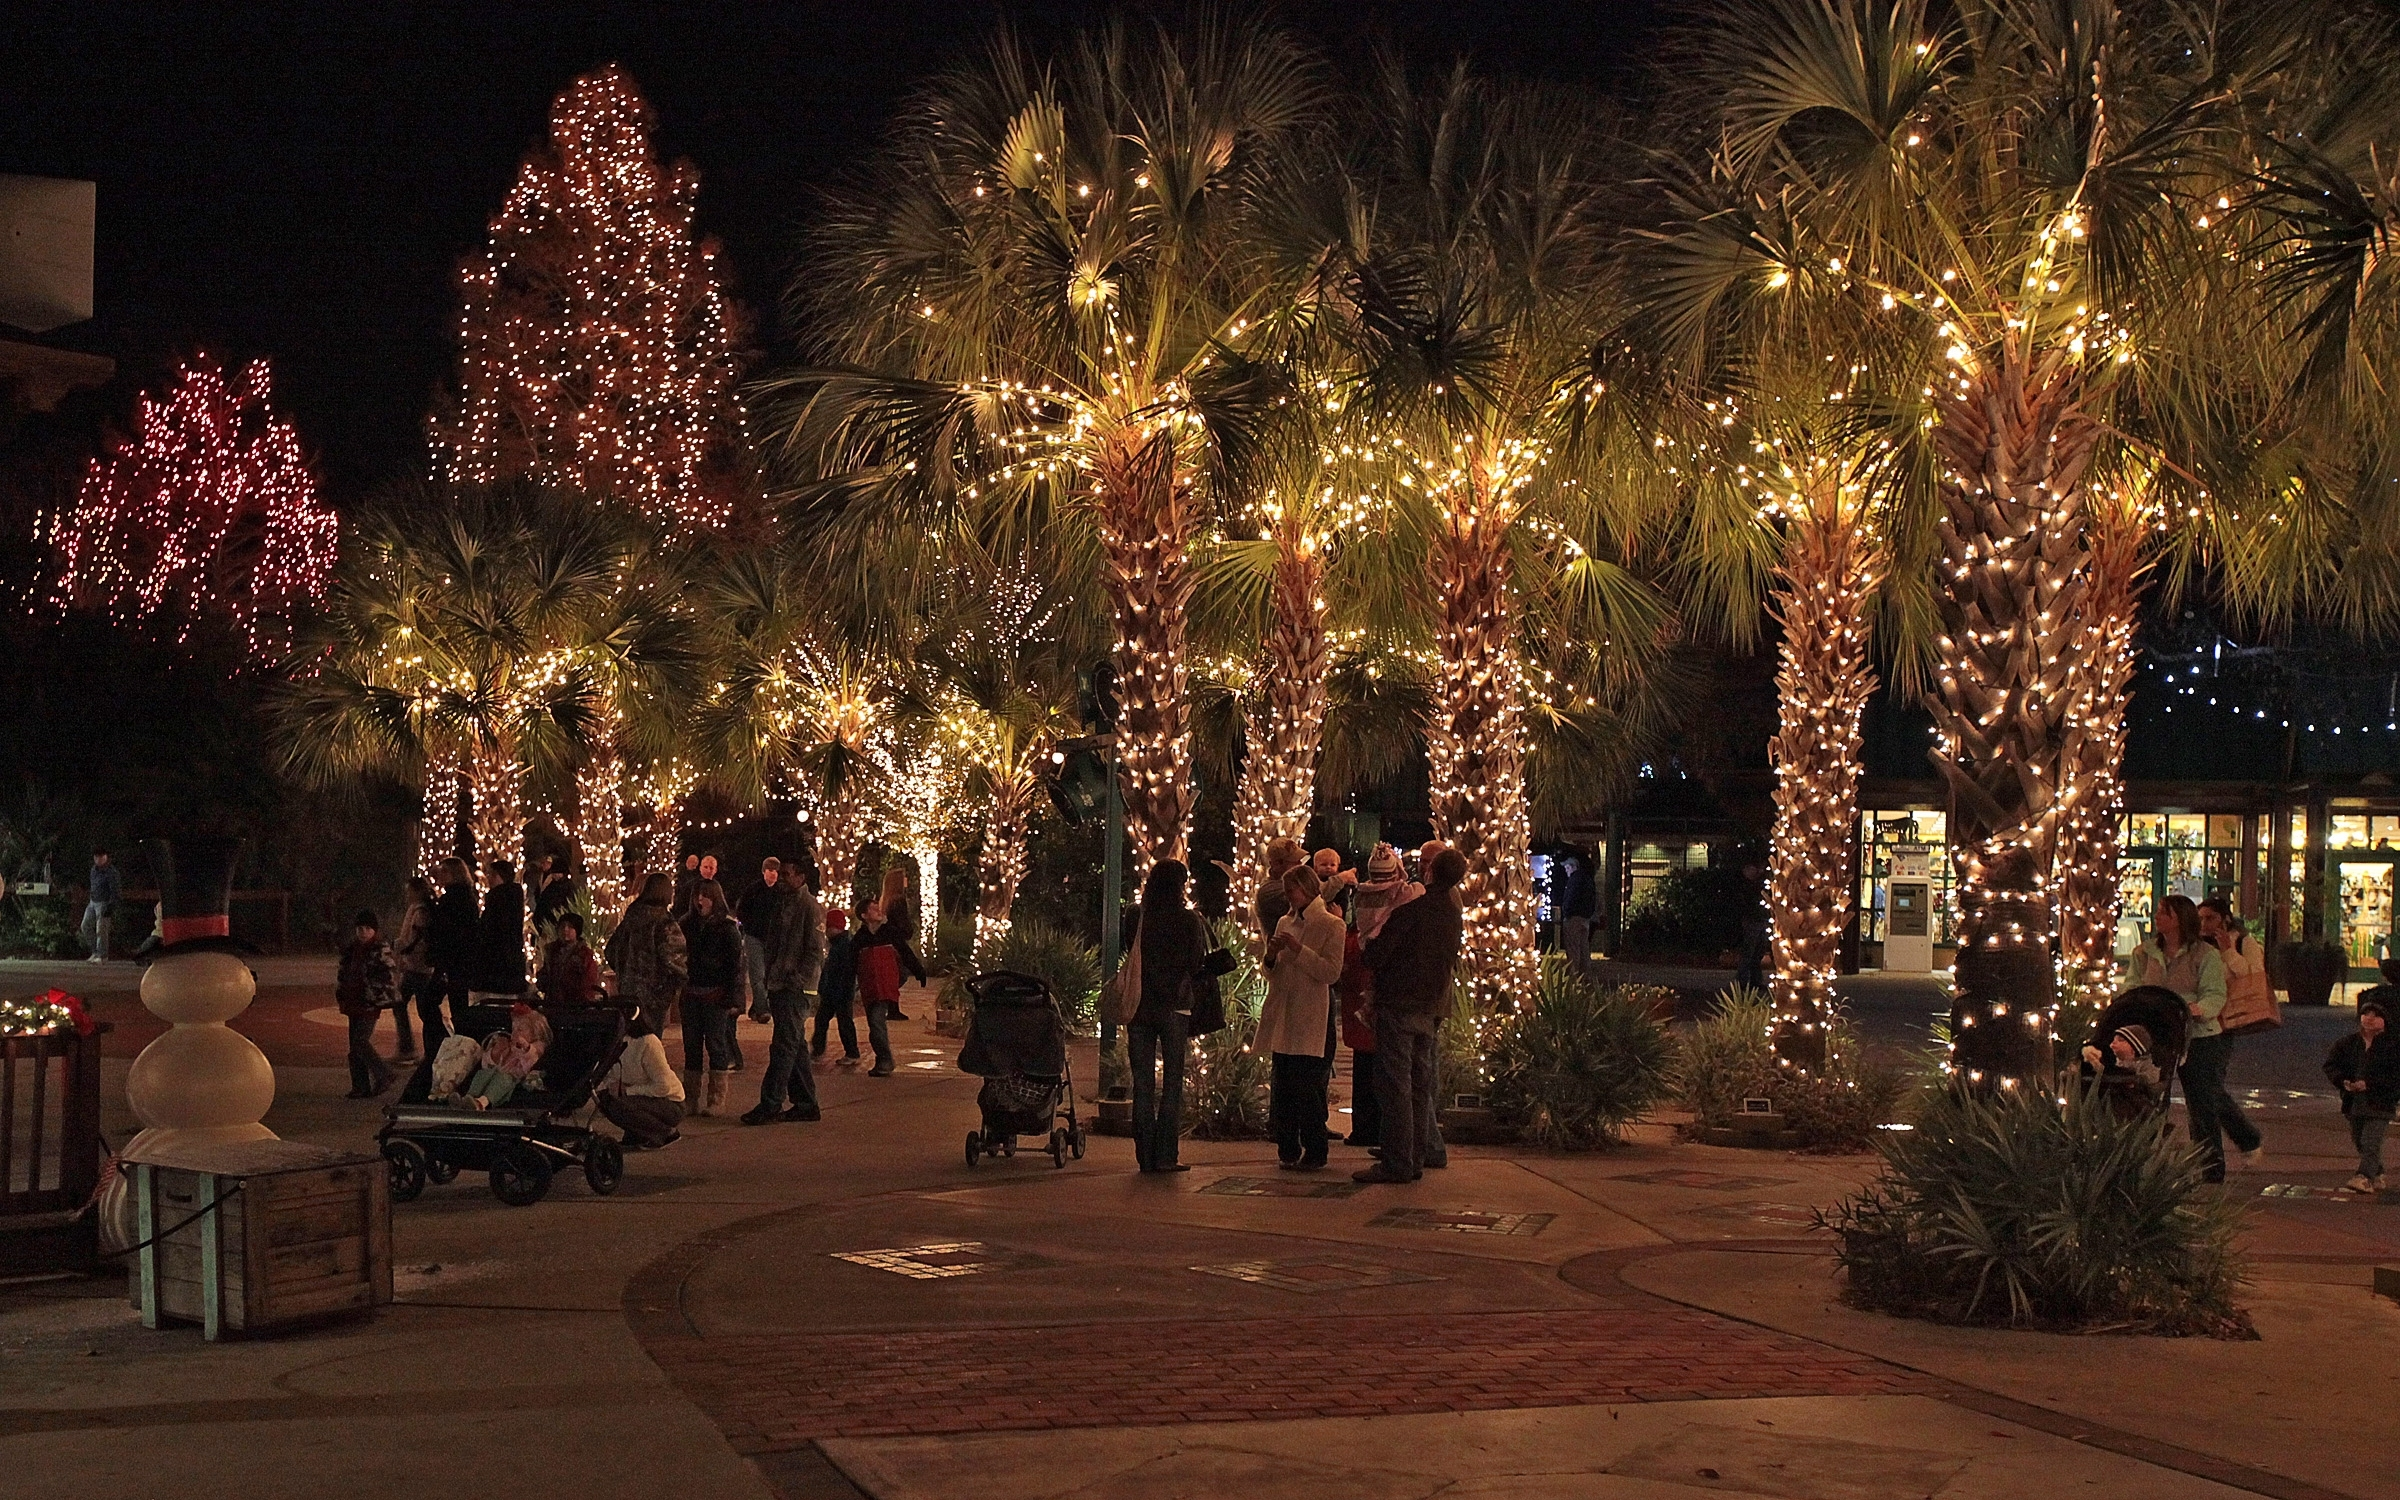 Outdoor Solar Decorations String Lighting On Palm Trees In within Outdoor Lanterns for Christmas (Image 16 of 20)